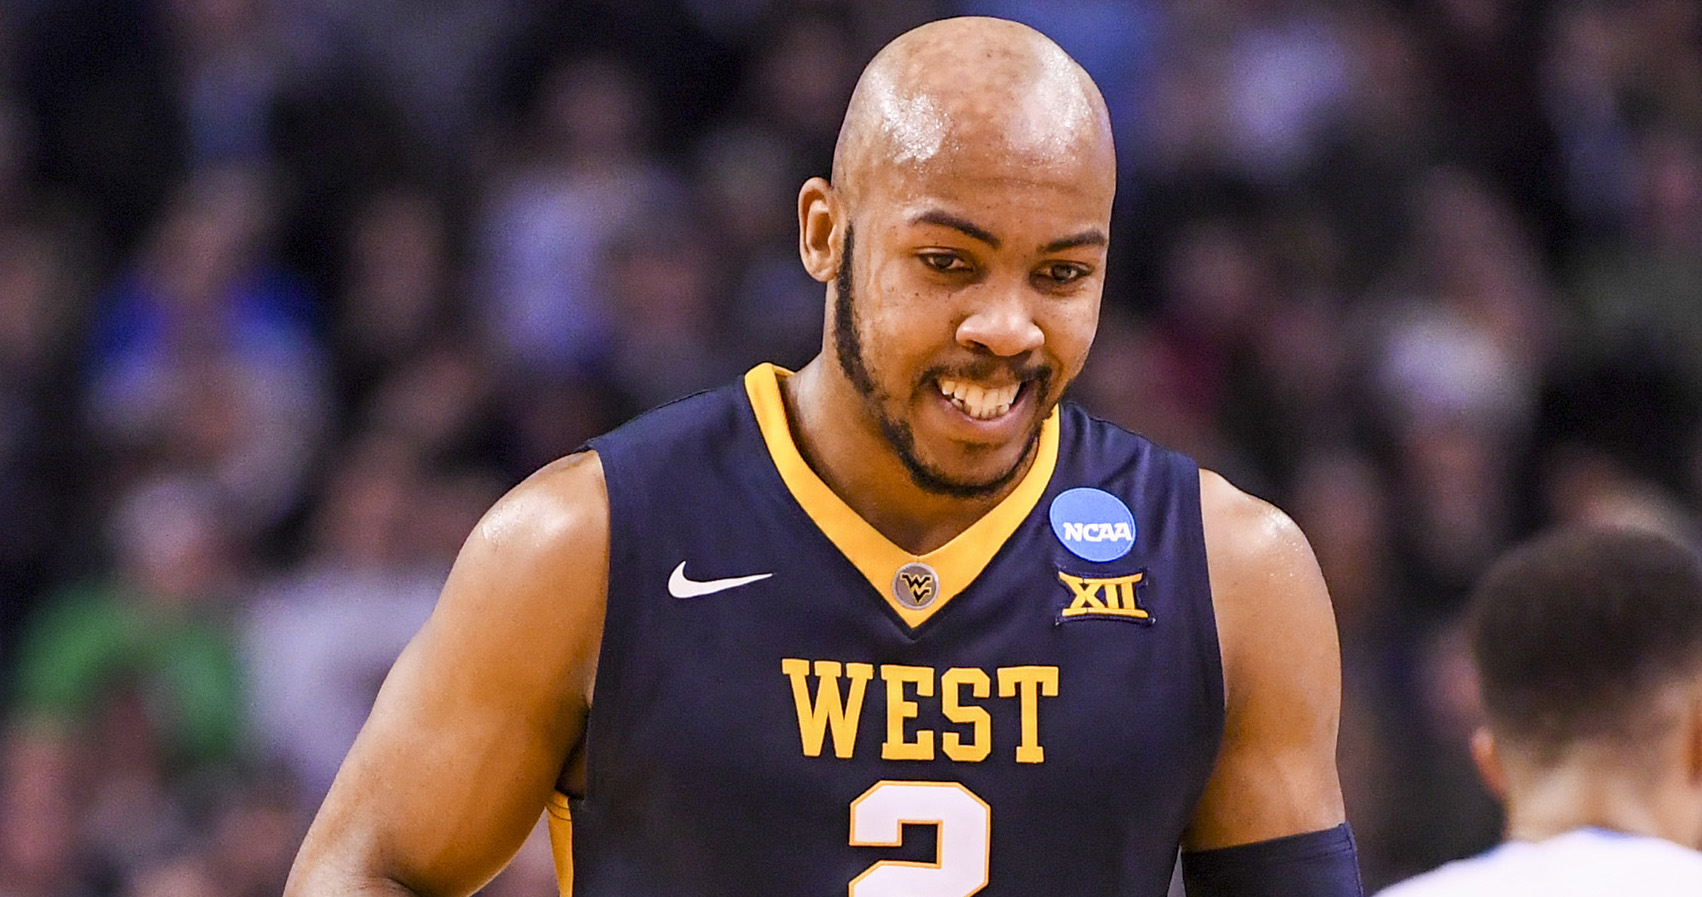 promo code 5276e 1469c D-Day For WVU's Jevon Carter - West Virginia University ...